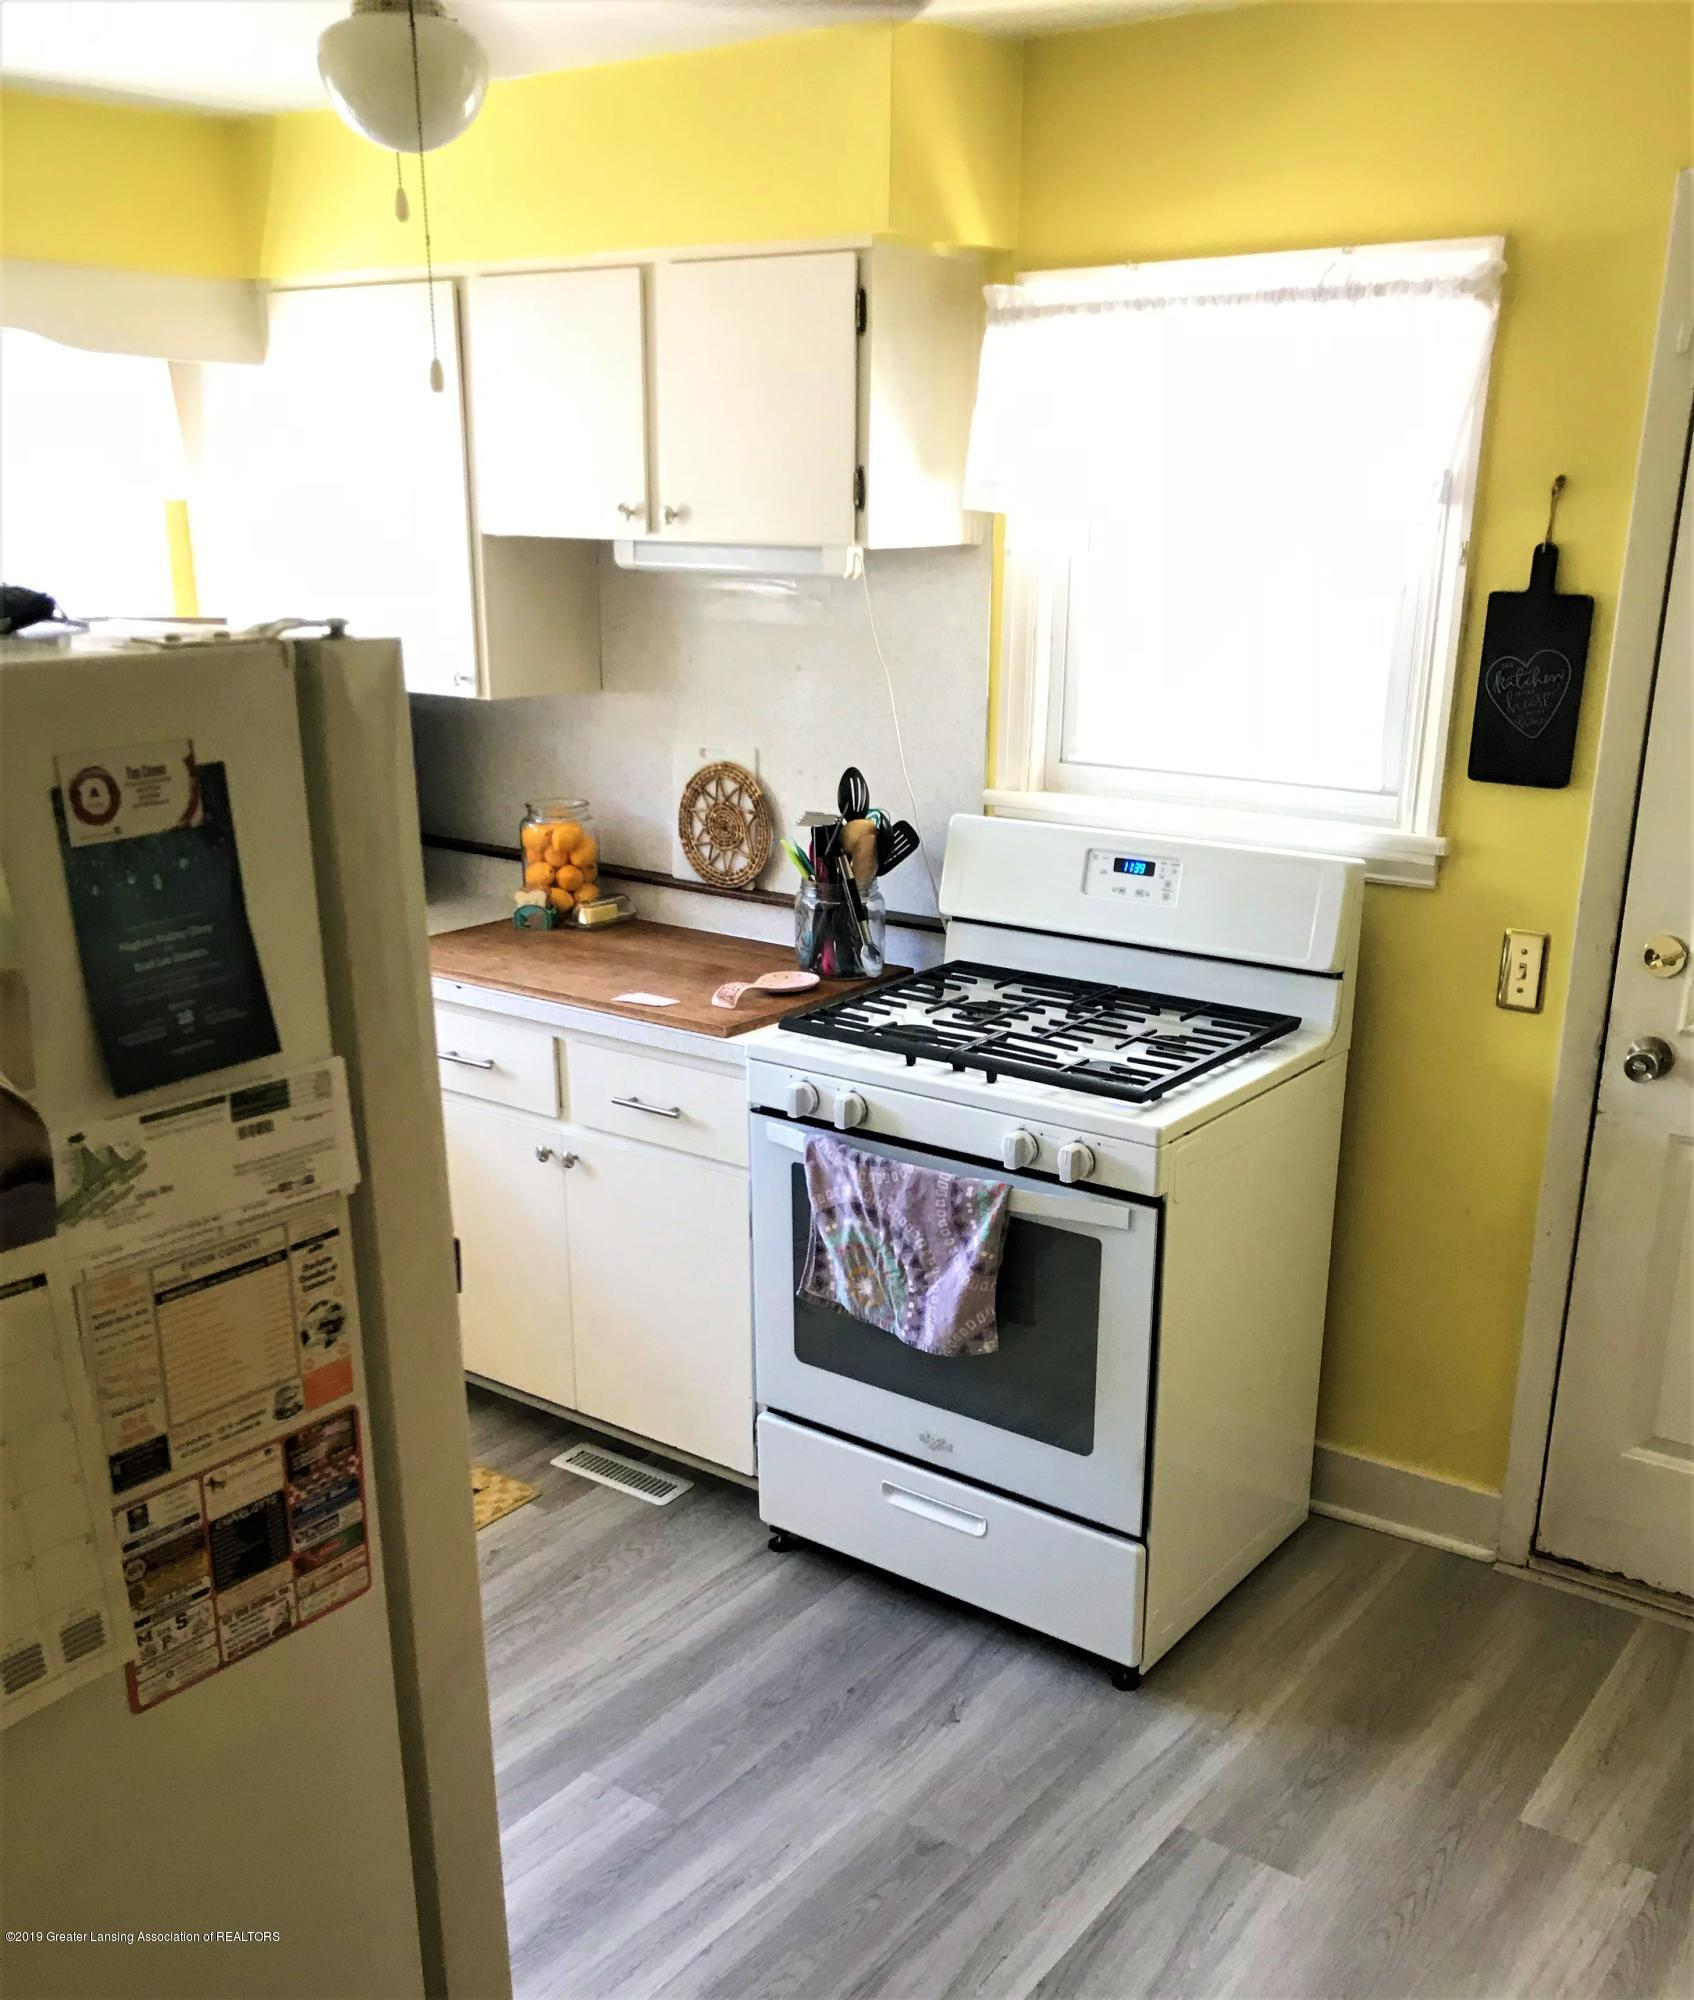 401 Foote St - 11 Kitchen - 12